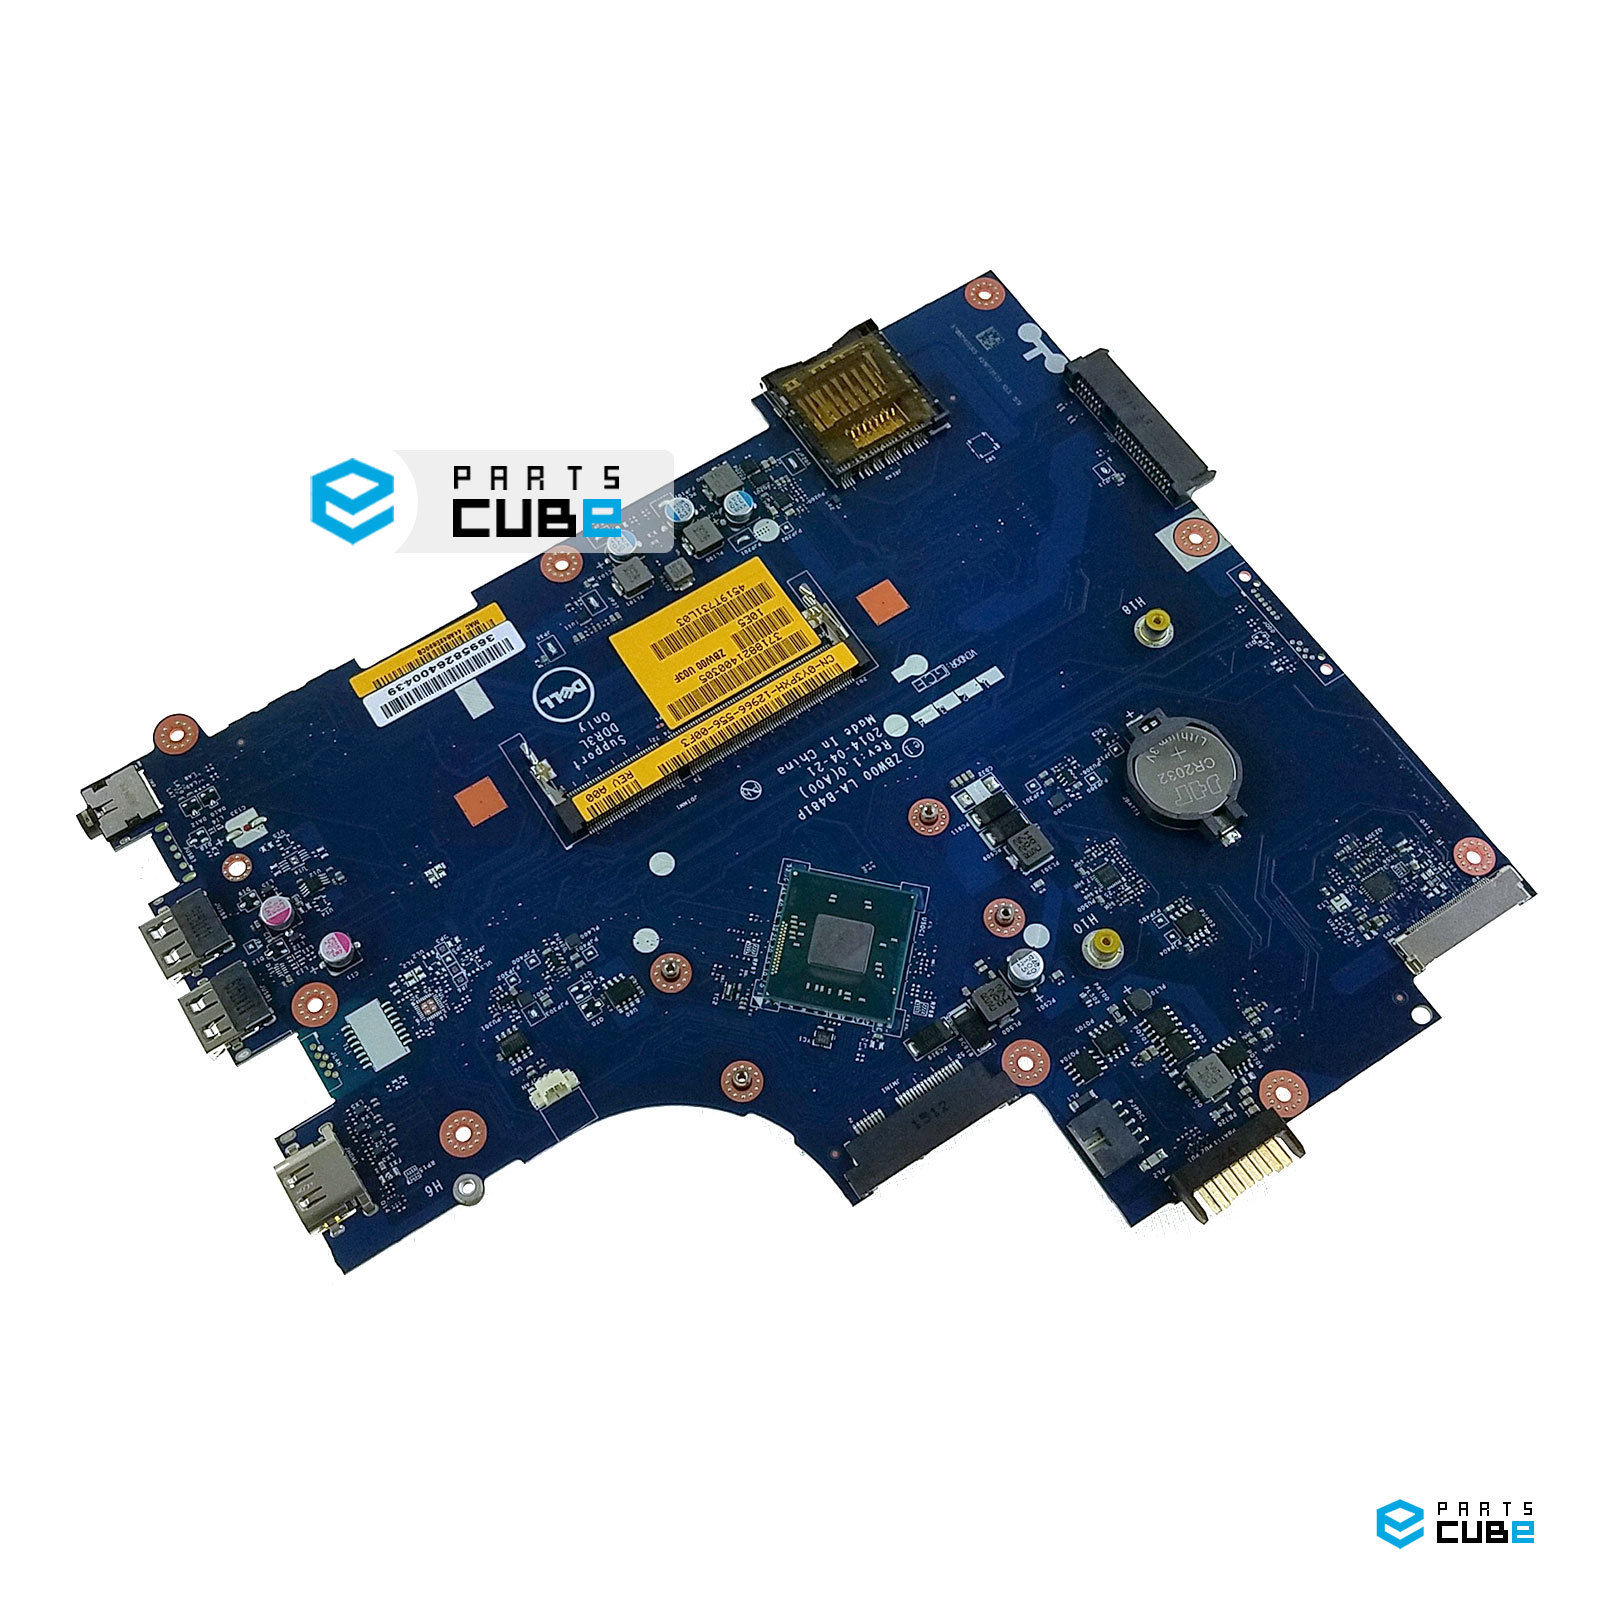 NEW Dell Inspiron 15 3531 Intel N3530 Quad Core 2.16GHz Motherboard 28V9W Y3PXH